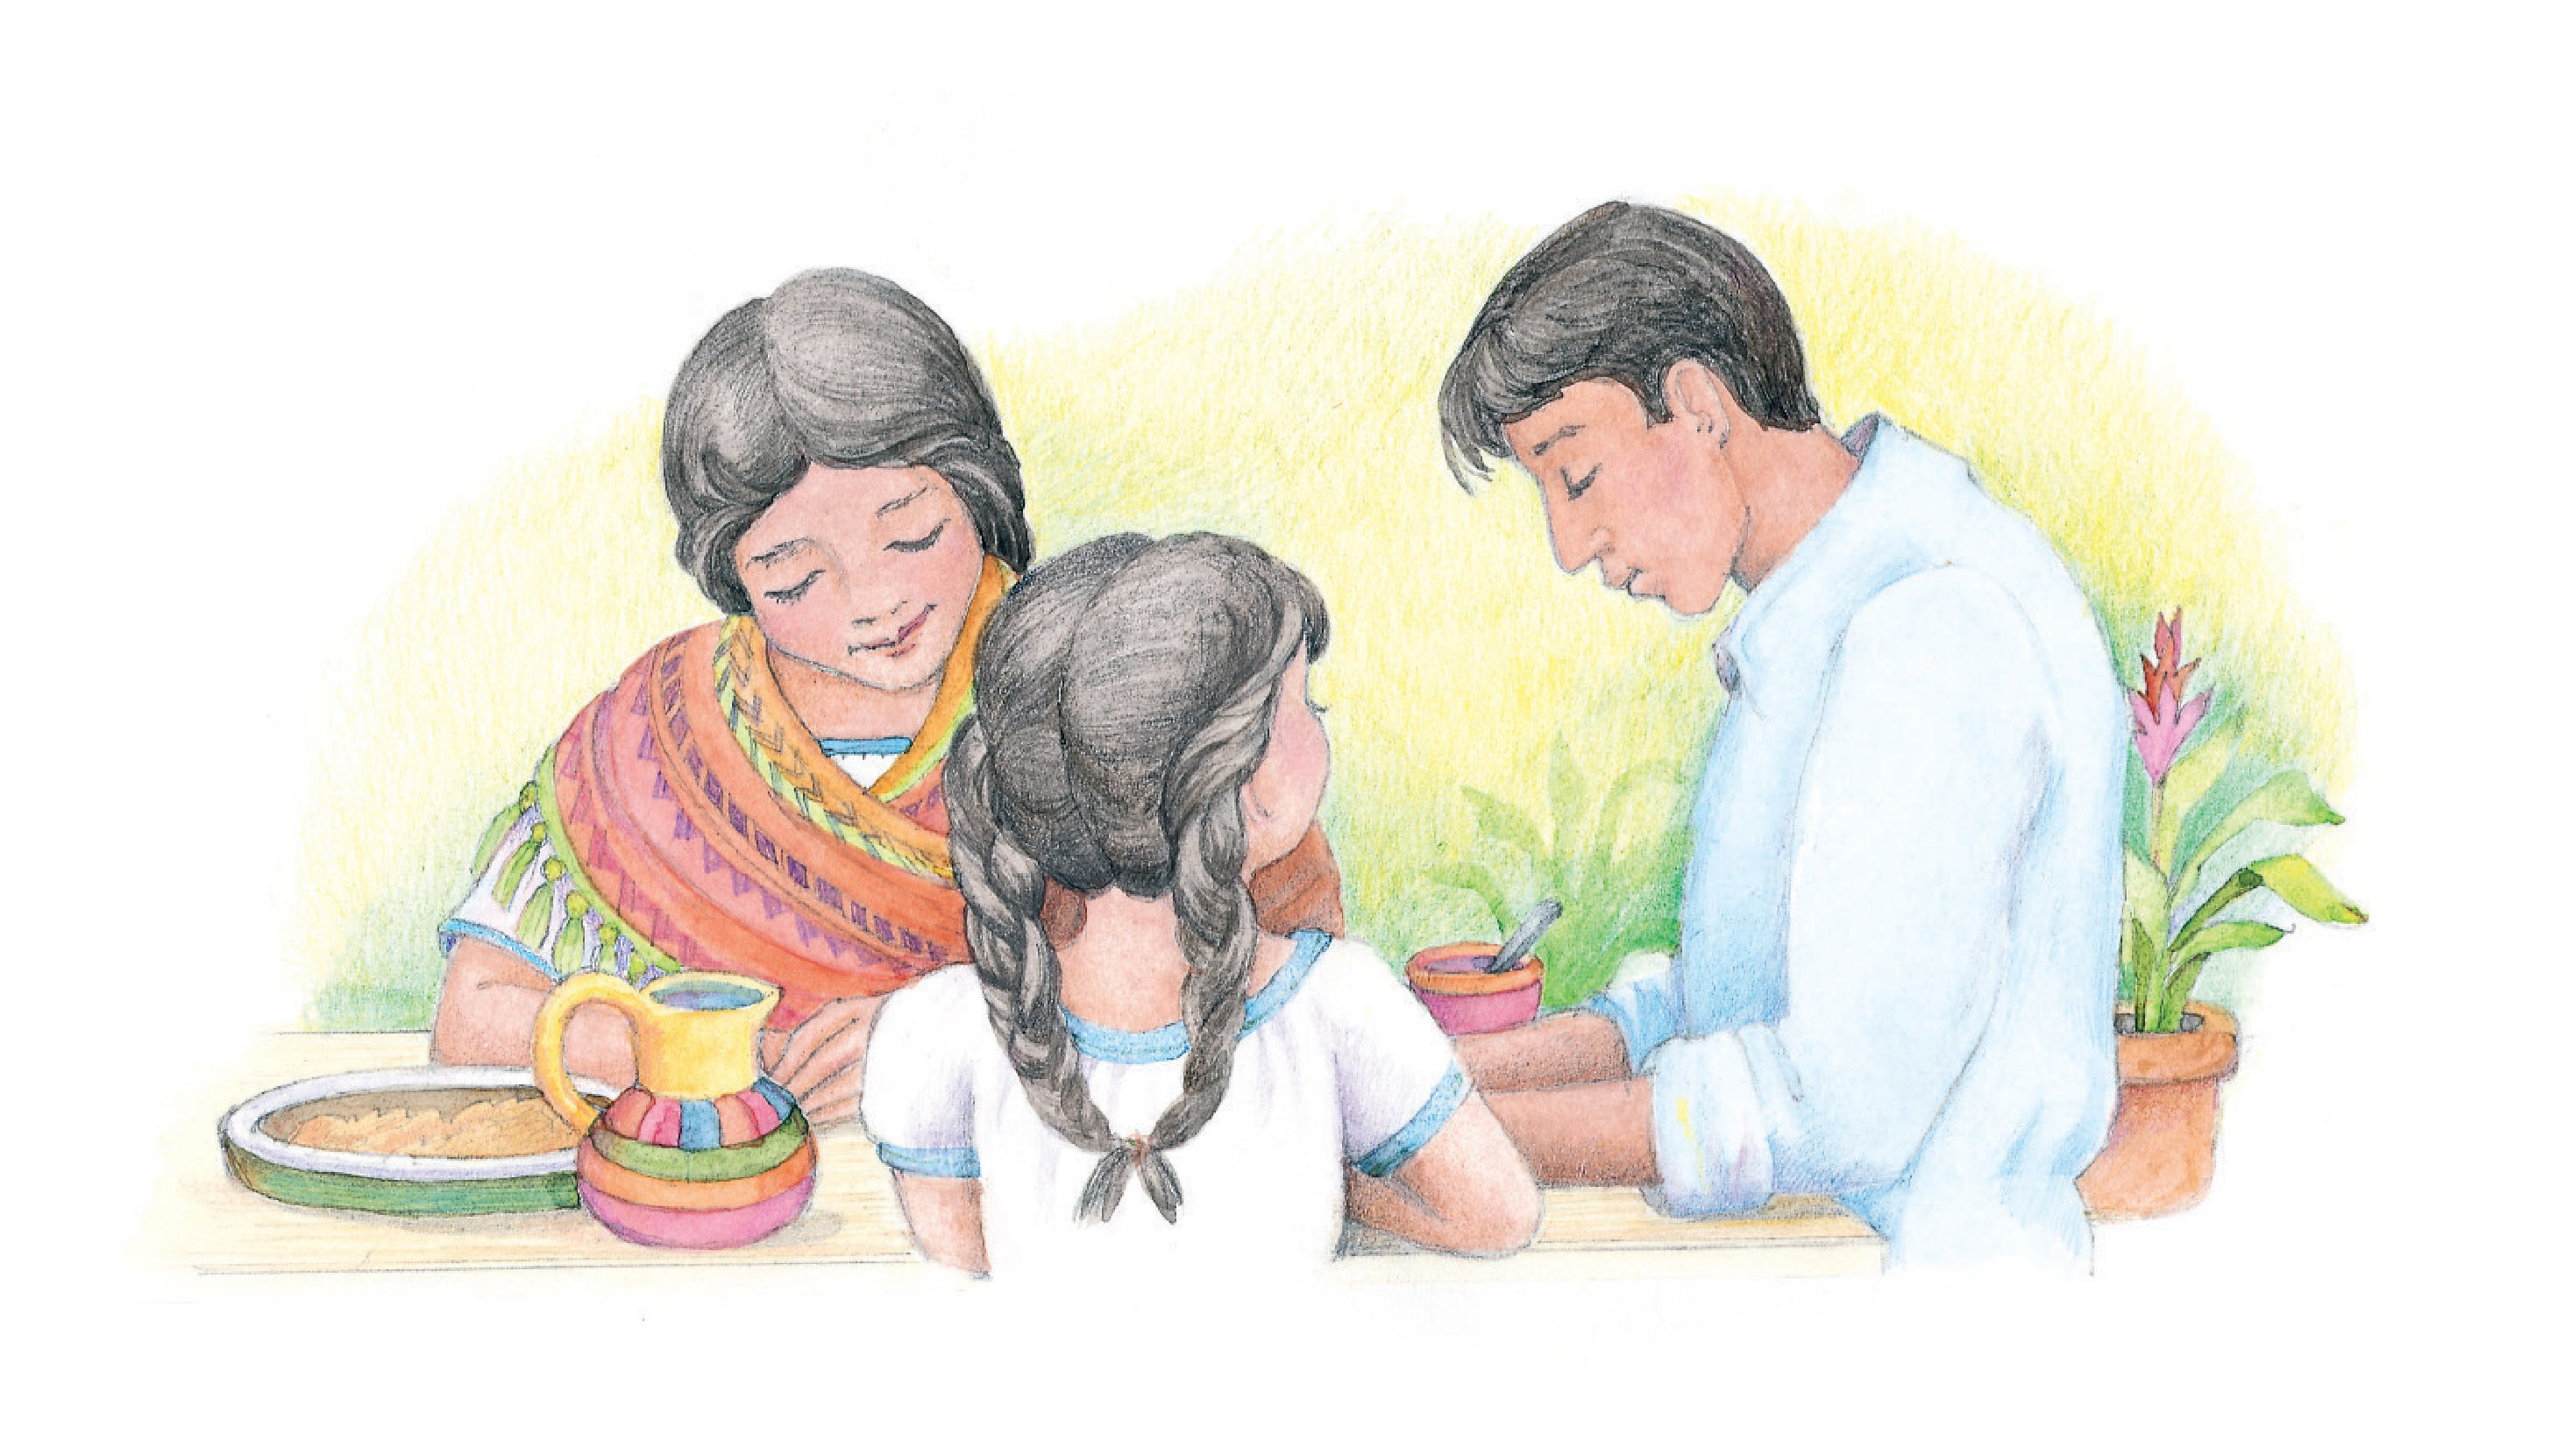 """A family praying at the table together. From the Children's Songbook, page 21, """"For Health and Strength"""" and """"For Thy Bounteous Blessings""""; watercolor illustration by Phyllis Luch."""